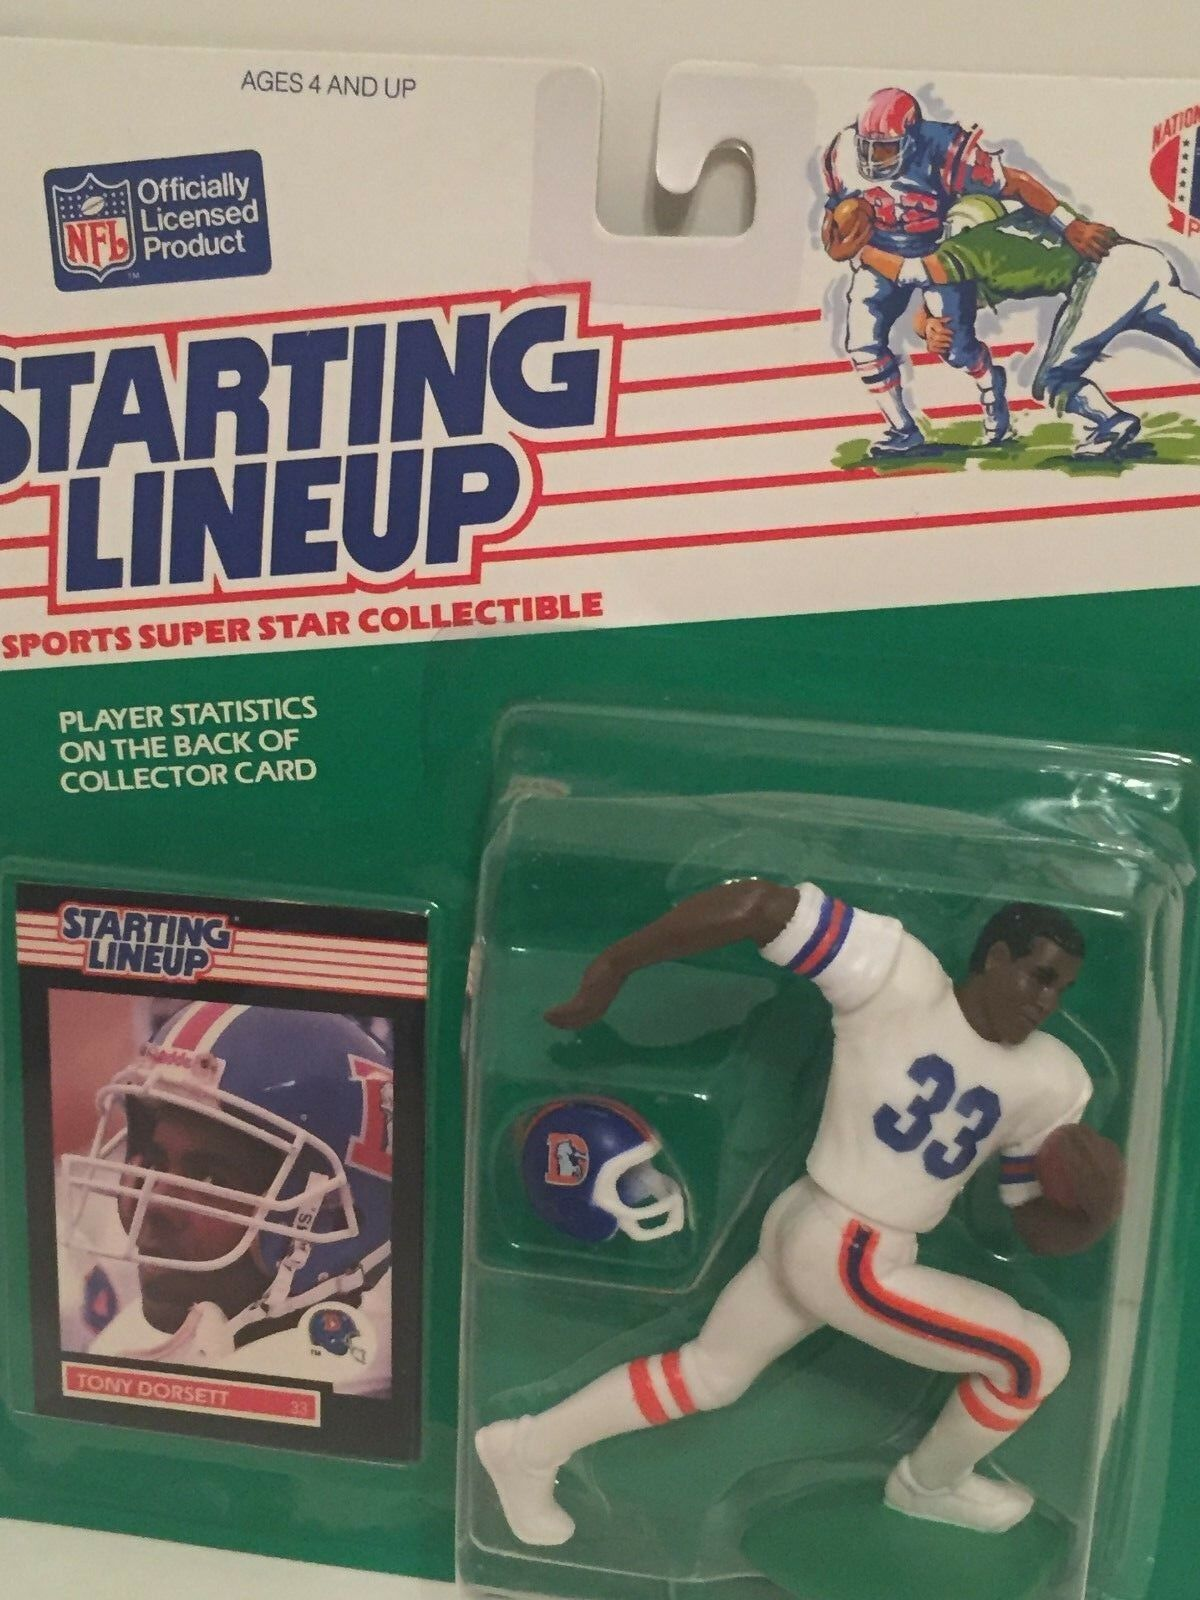 1989 Starting lineup Tony Dorsett figure Card Denver Broncos toy Cowboys Pitt